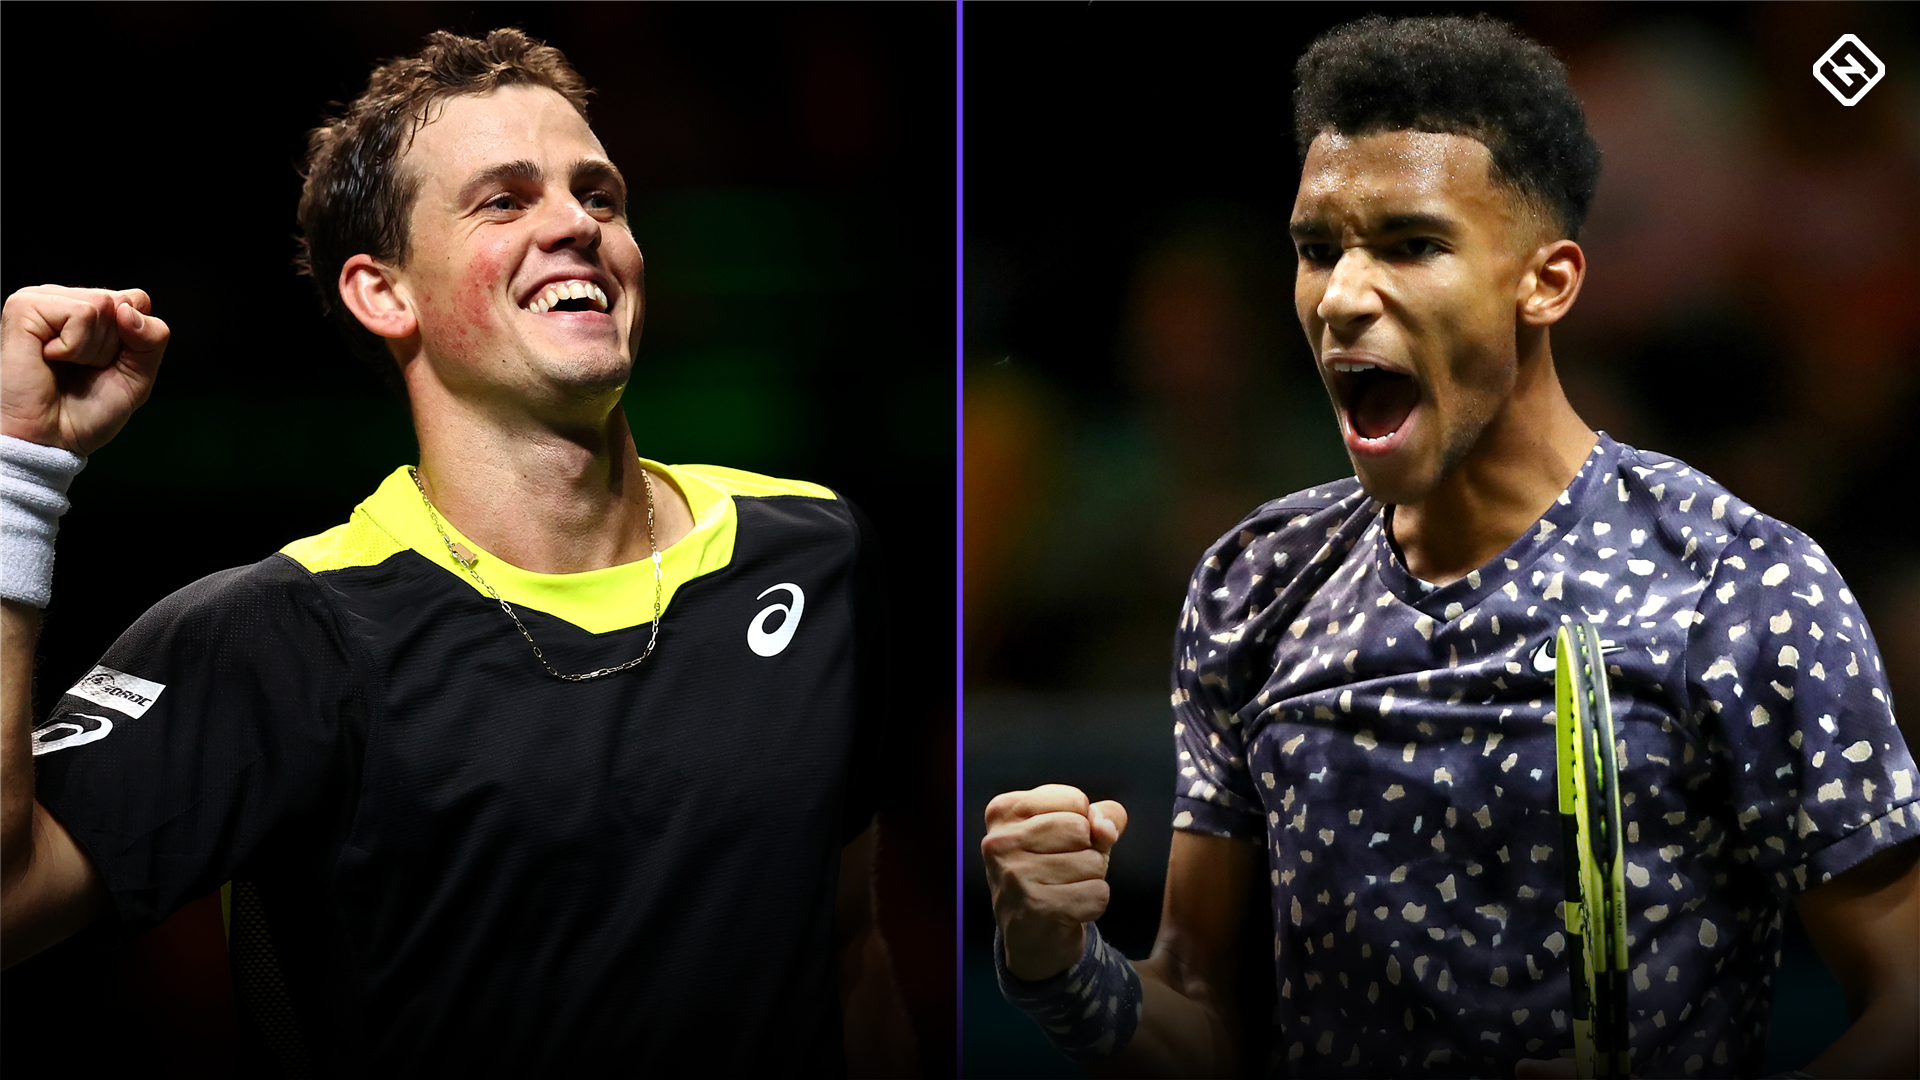 Open 13 2020: Vasek Pospisil into the quarters, Felix Auger-Aliassime passes round of 32 test